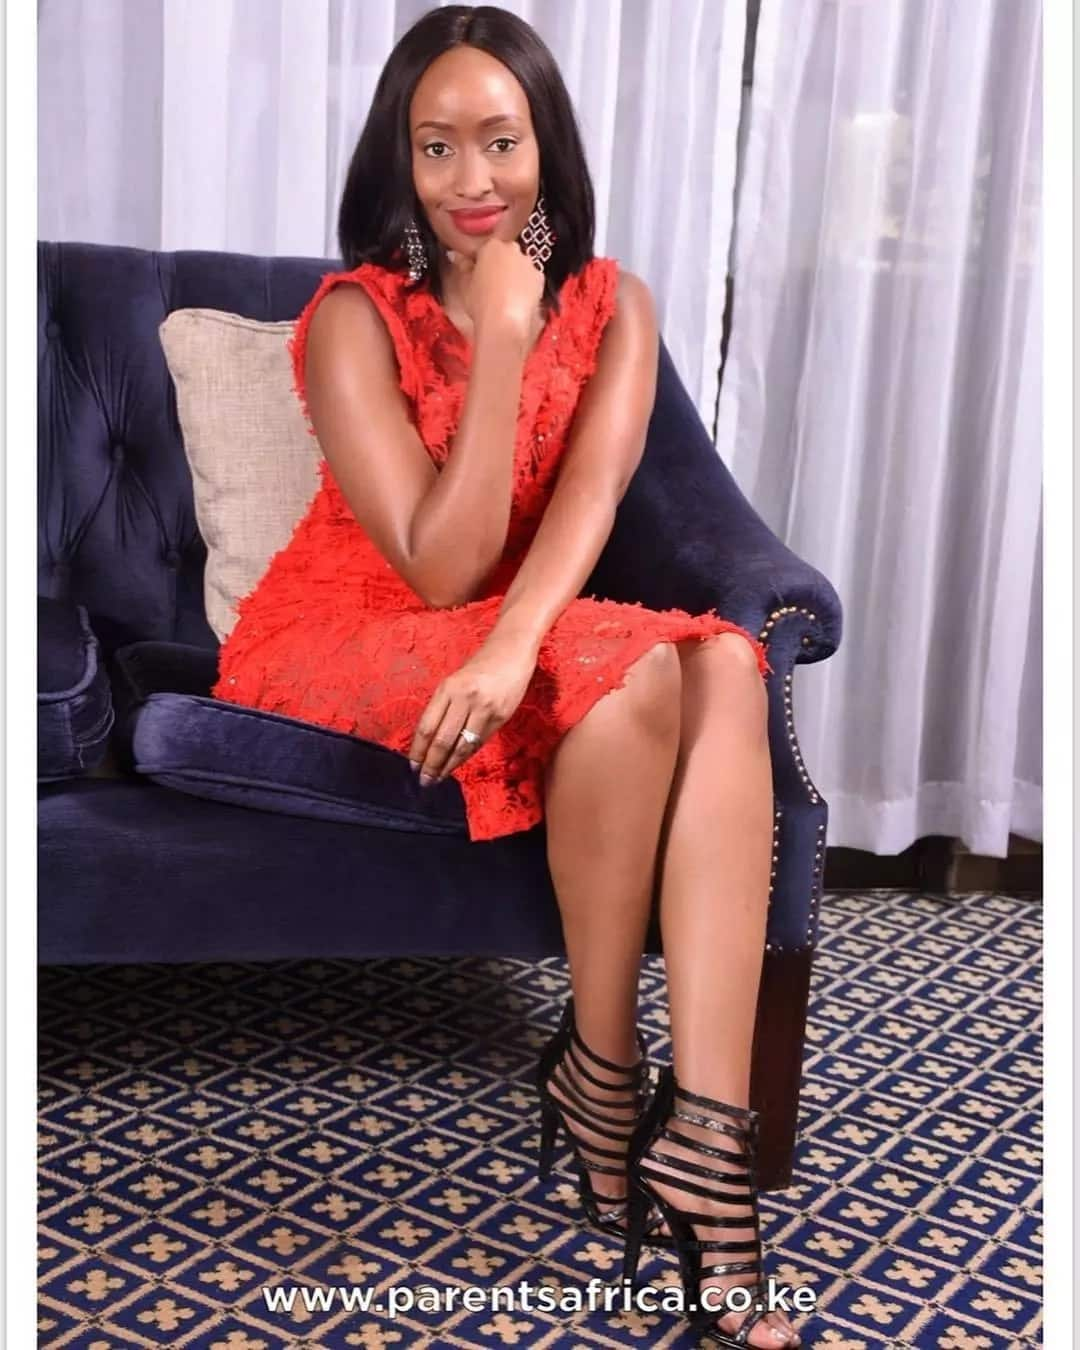 Ex Citizen TV anchor Janet Mbugua is also pregnant and TUKO.co.ke has the details